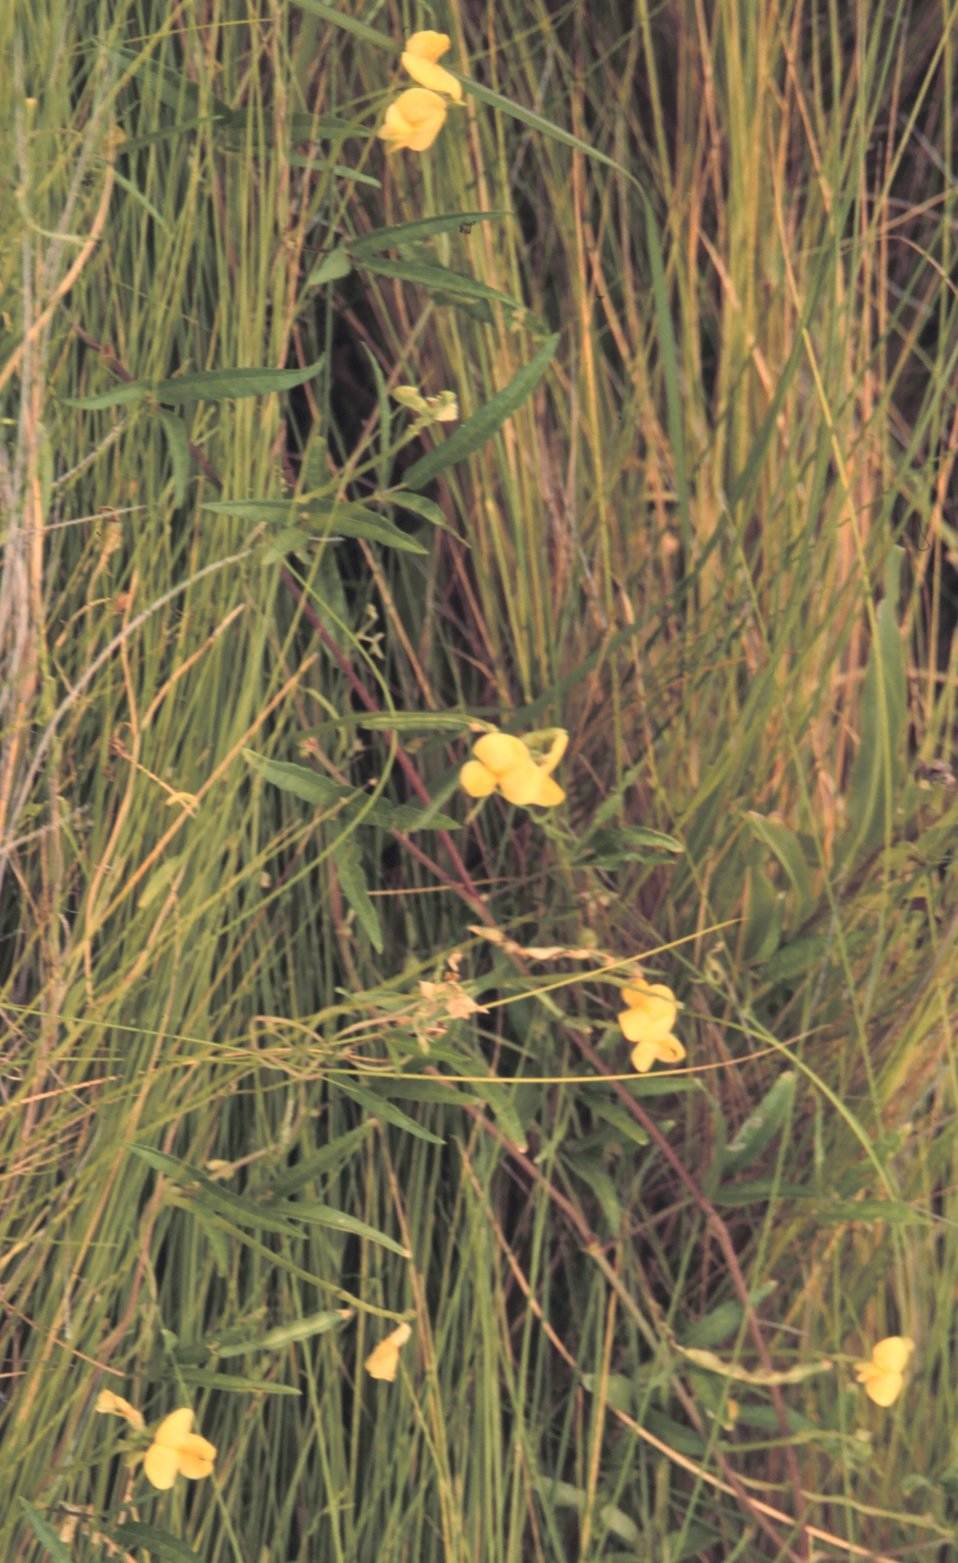 Deer pea is a common marsh plant that plays an important role in nitrogen cycling.